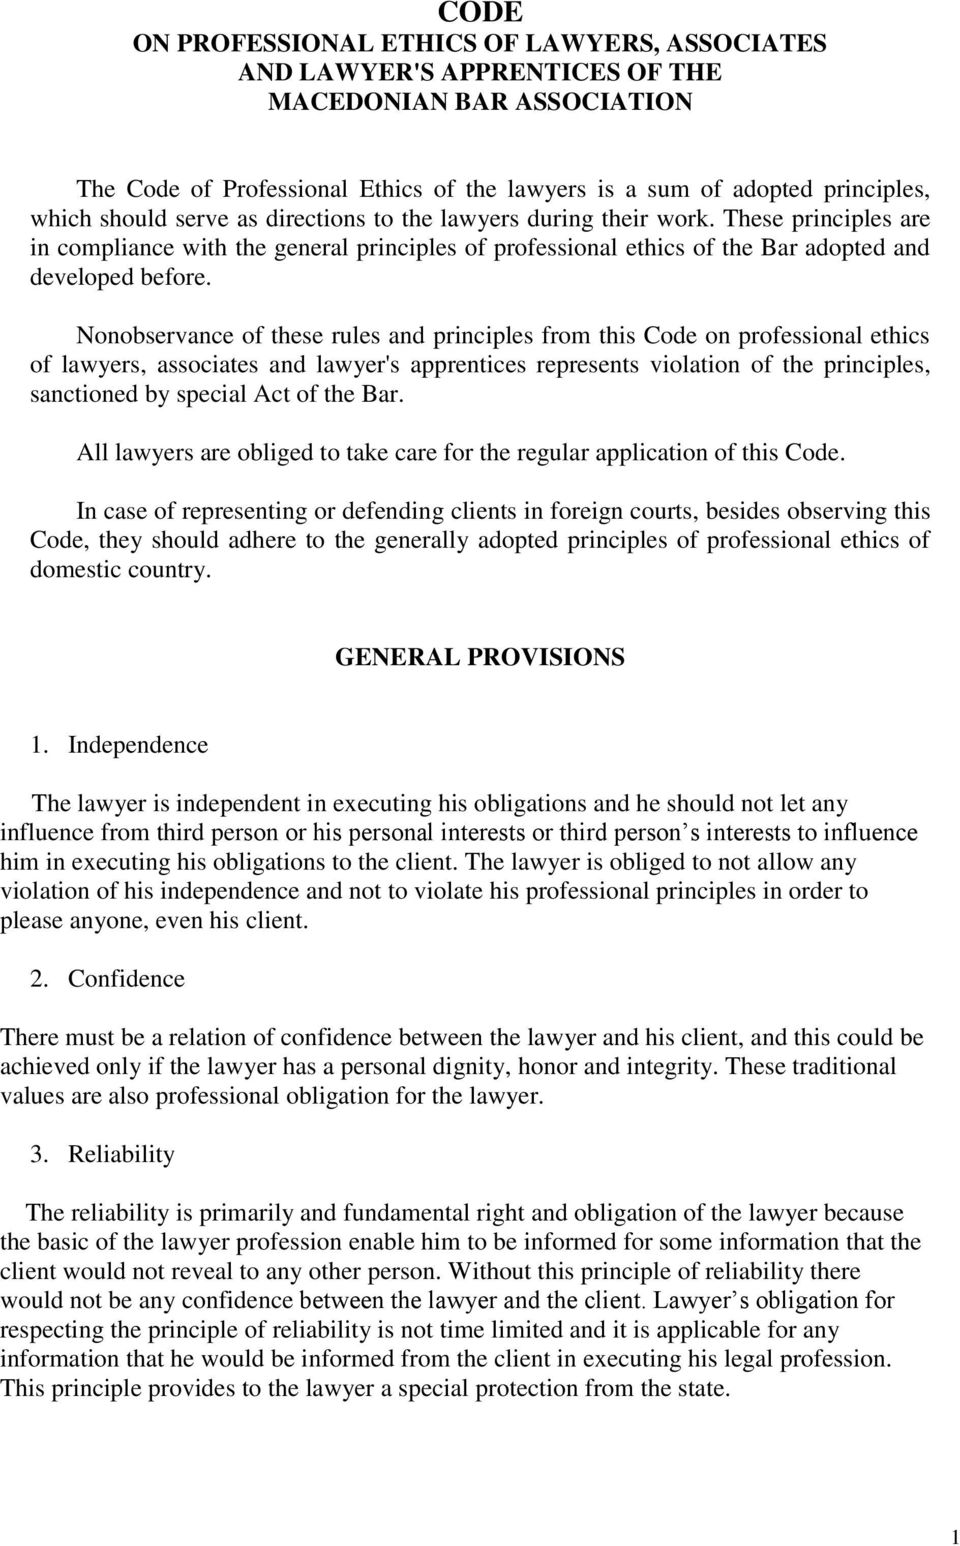 Nonobservance of these rules and principles from this Code on professional ethics of lawyers, associates and lawyer's apprentices represents violation of the principles, sanctioned by special Act of